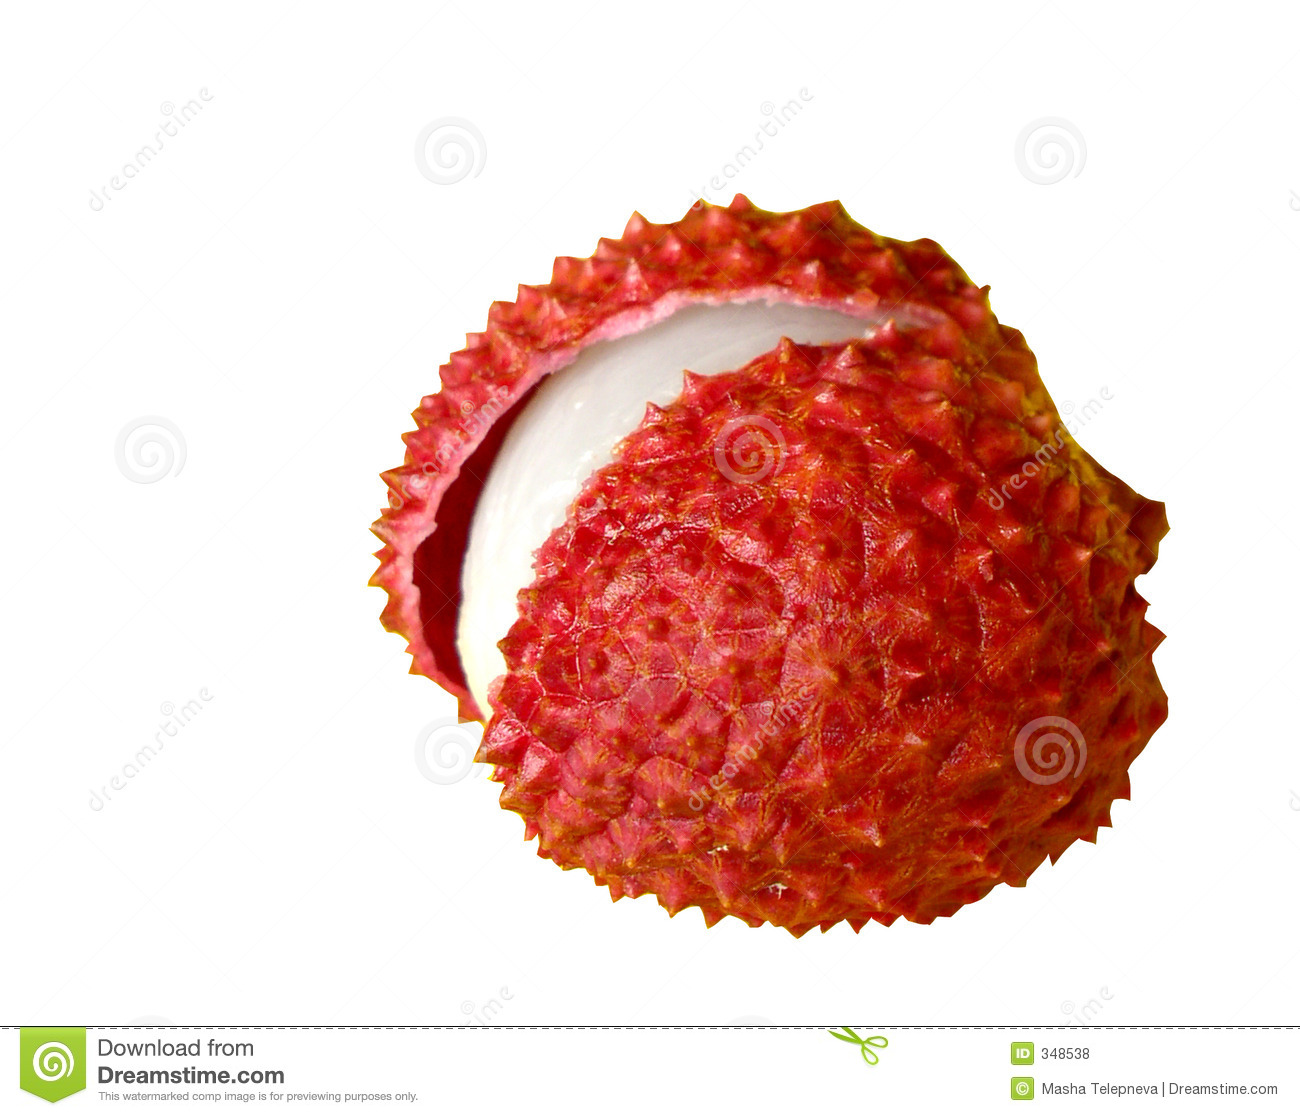 Litchi Chinensis (lychee) Royalty Free Stock Photos.